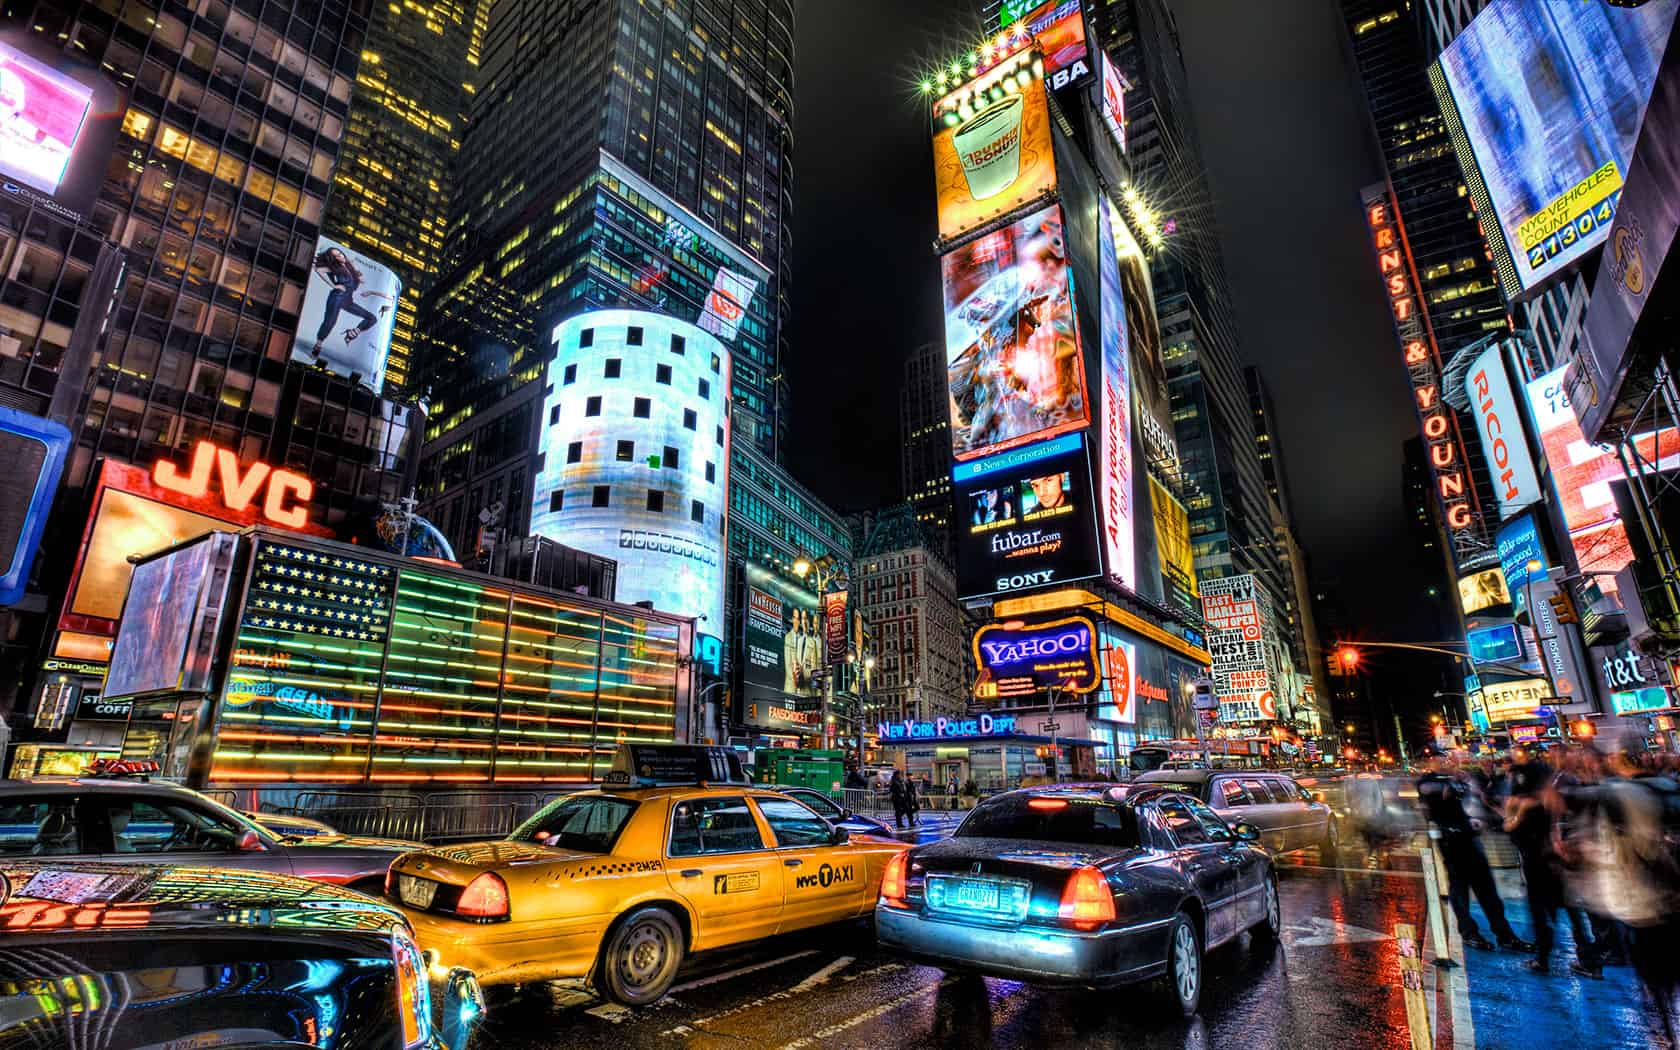 Times Square is a major commercial intersection in the borough of Manhattan in New York City, at the junction of Broadway and Seventh Avenue and stretching from West 42nd to West 47th Streets. The extended Times Square area, also called the Theatre District, consists of the blocks between Sixth and Eighth Avenues from east to west, and West 40th and West 53rd Streets from south to north, making up the western part of the commercial area of Midtown Manhattan.